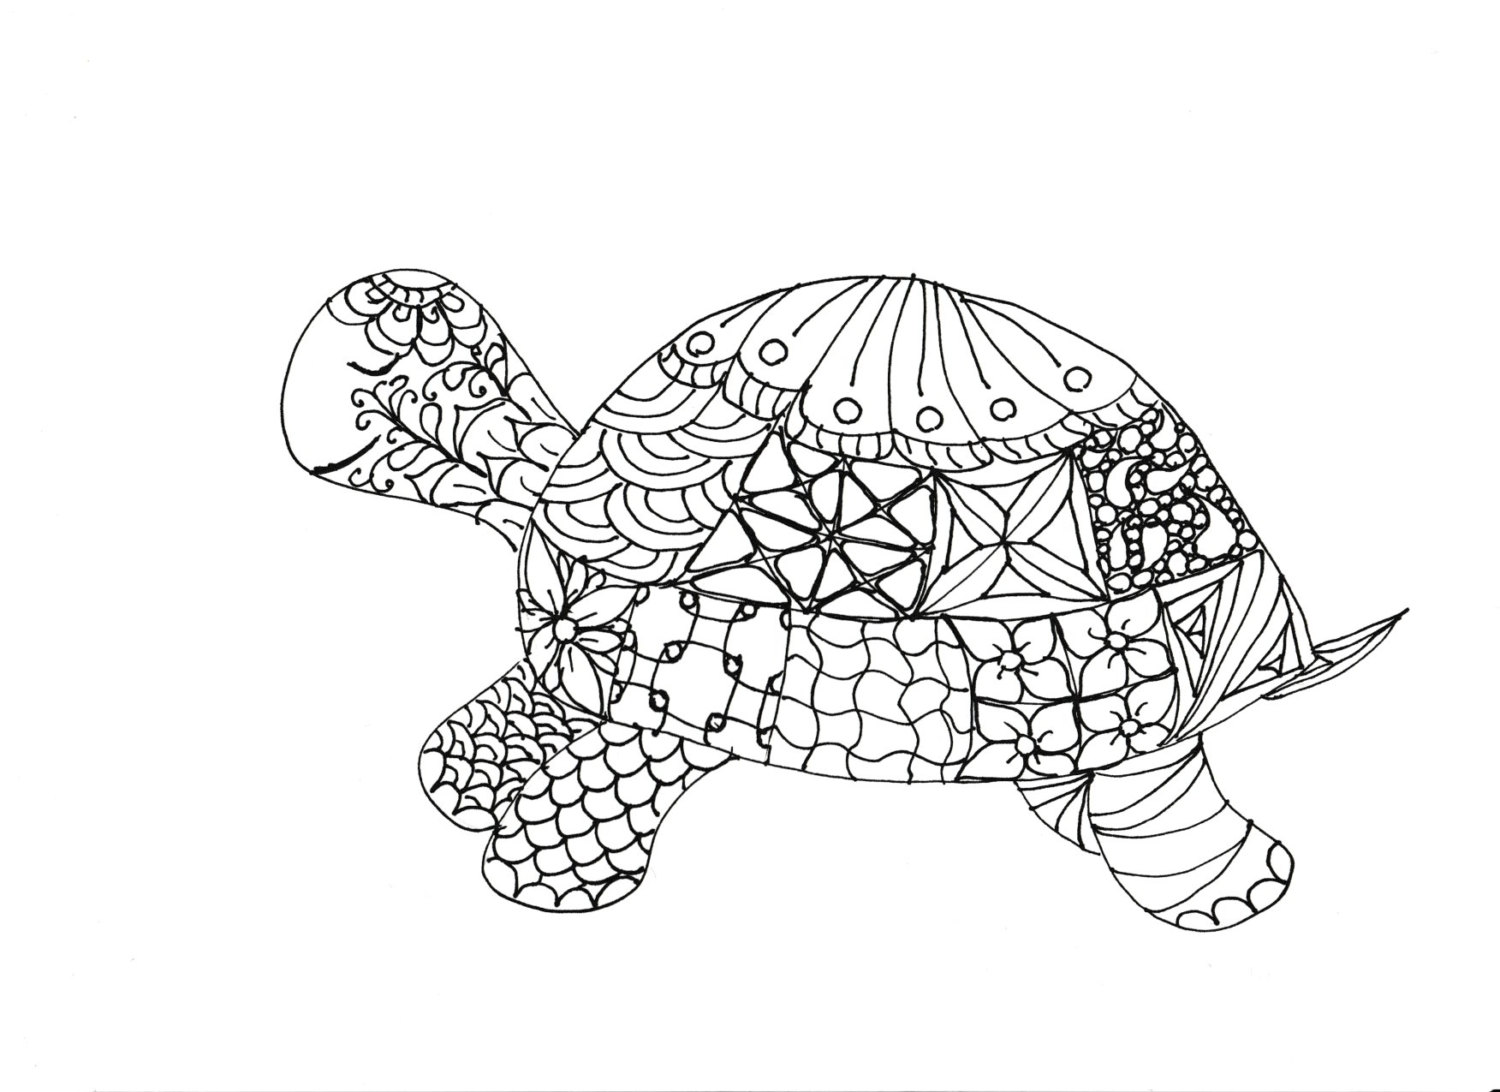 1500x1092 Adult Coloring Pages Turtle Artcommission Me Cool For Adults